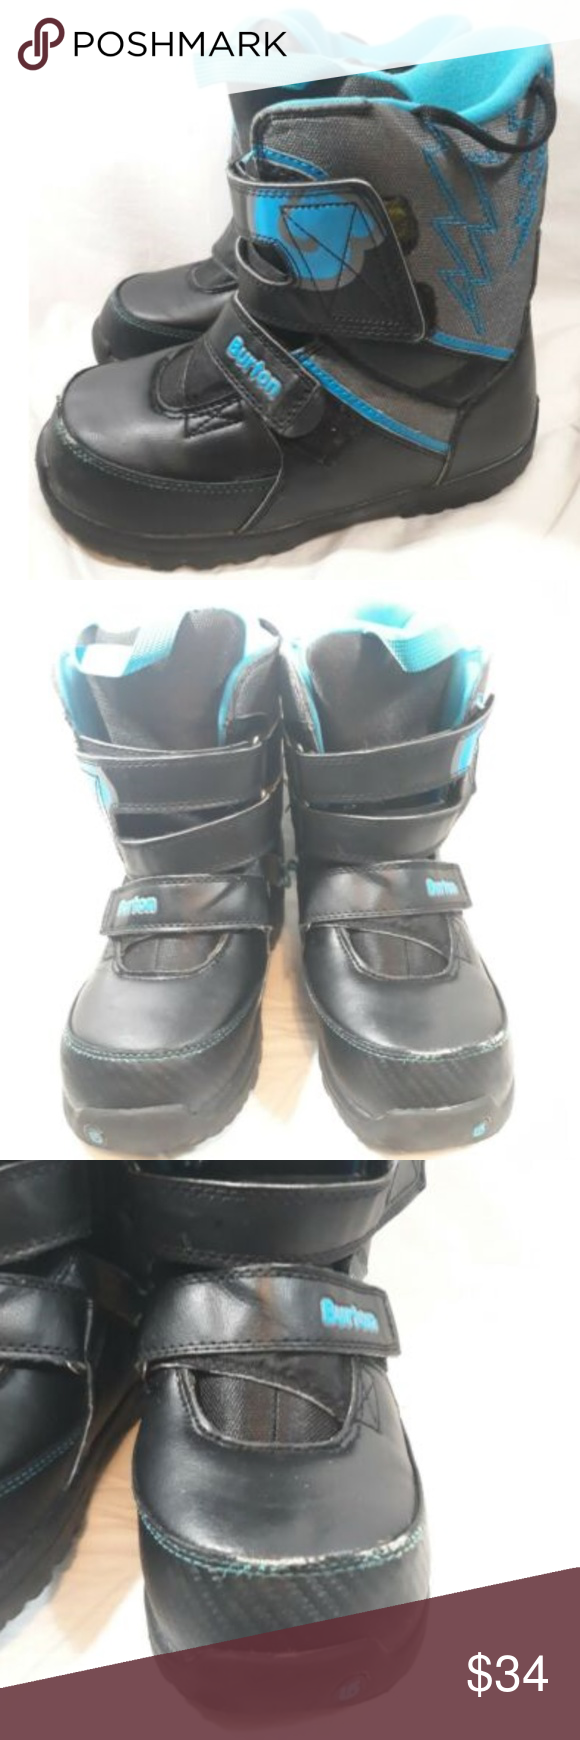 Burton Snowboarding Boots Black Blue Grom Youth 5 Burton Youth Size 5 Grom Boa S…